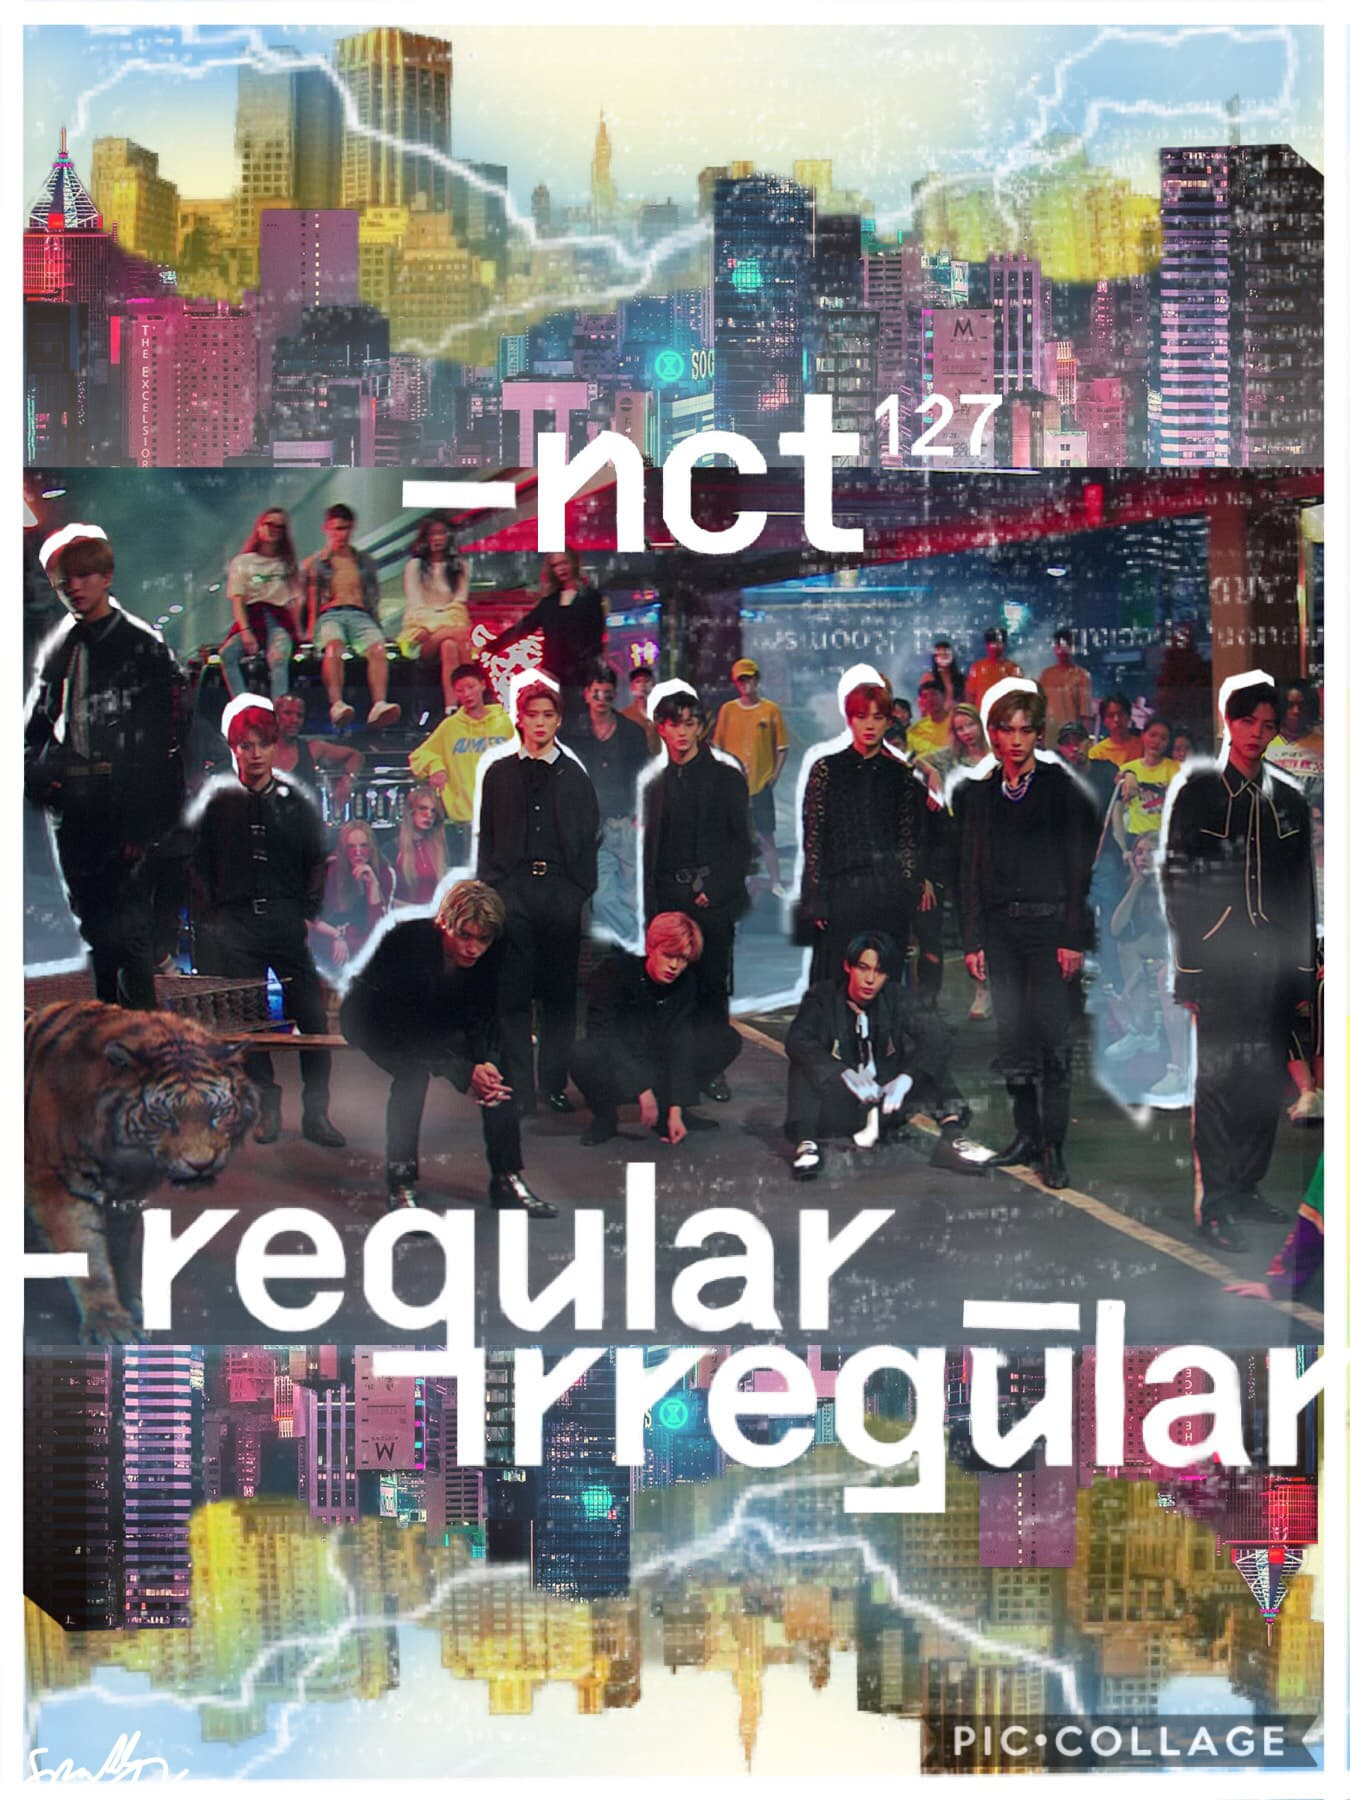 Hehe what's ur guys' fav song from Regular Irregular? I rlly like Regular and Run Back 2 U but OMG THE INTERLUDE: REGULAR TO IRREGULAR GAVE ME GOOSEBUMPS. WHEN THEY HIT ME WITH THE CHINESE I STARTED FLIPPING OUT AND HYPERVENTILATING